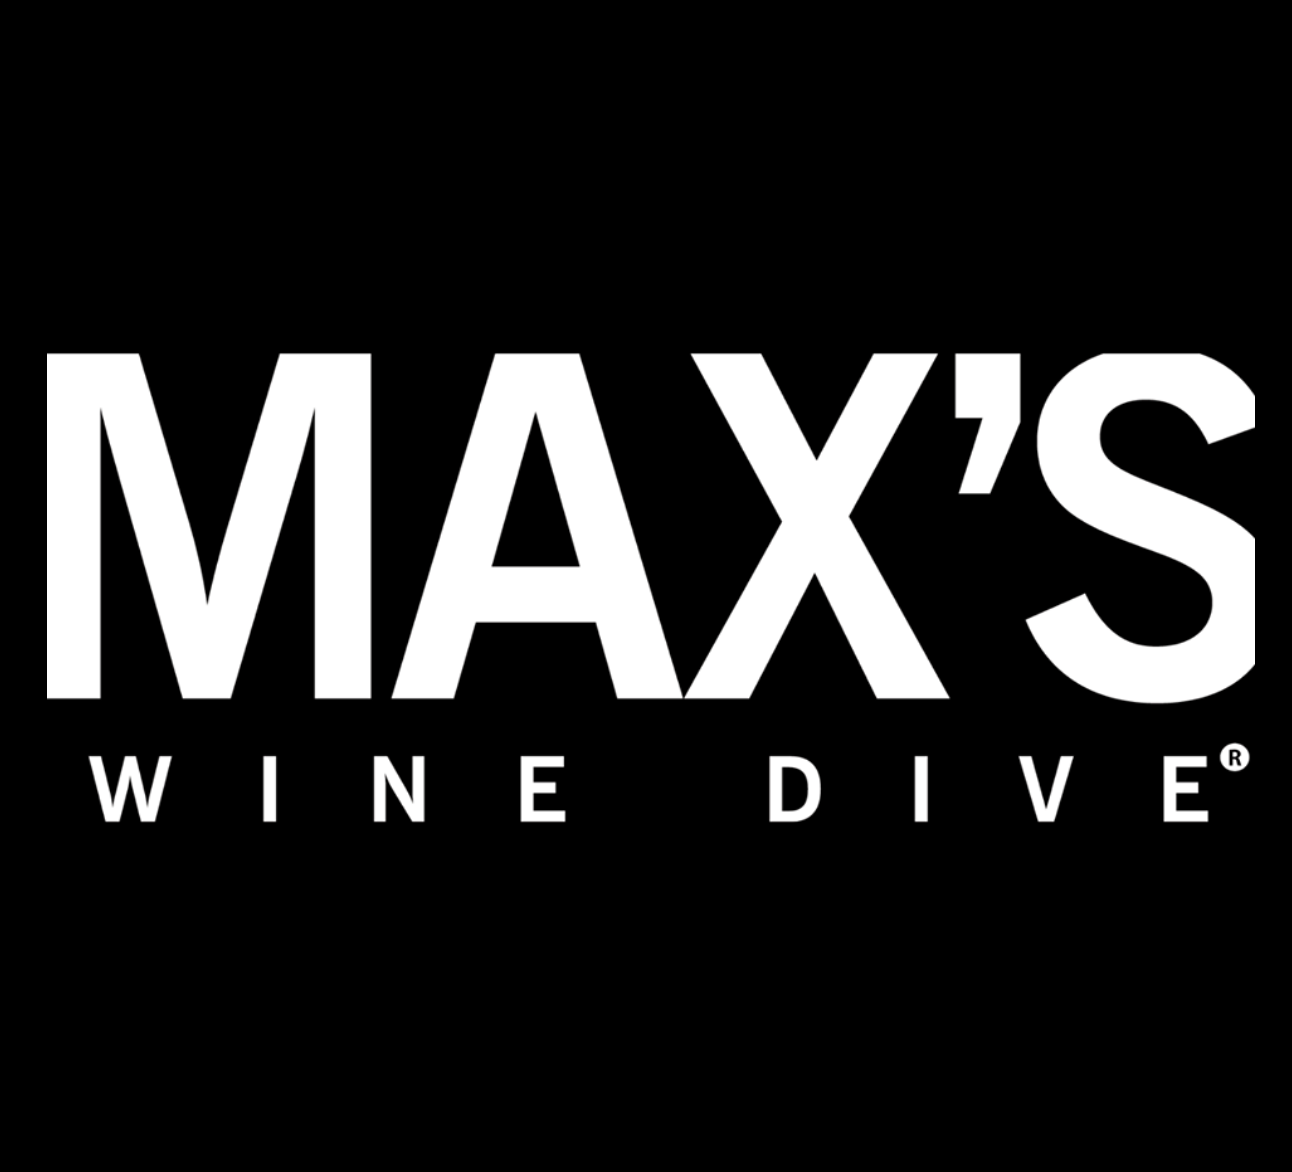 Max's Wine Dive , Lunch & Dinner  340 E Basse Road, Suite 101, San Antonio, 78209  P 210-444-9547    Max's Wine Dive Dinner Menu